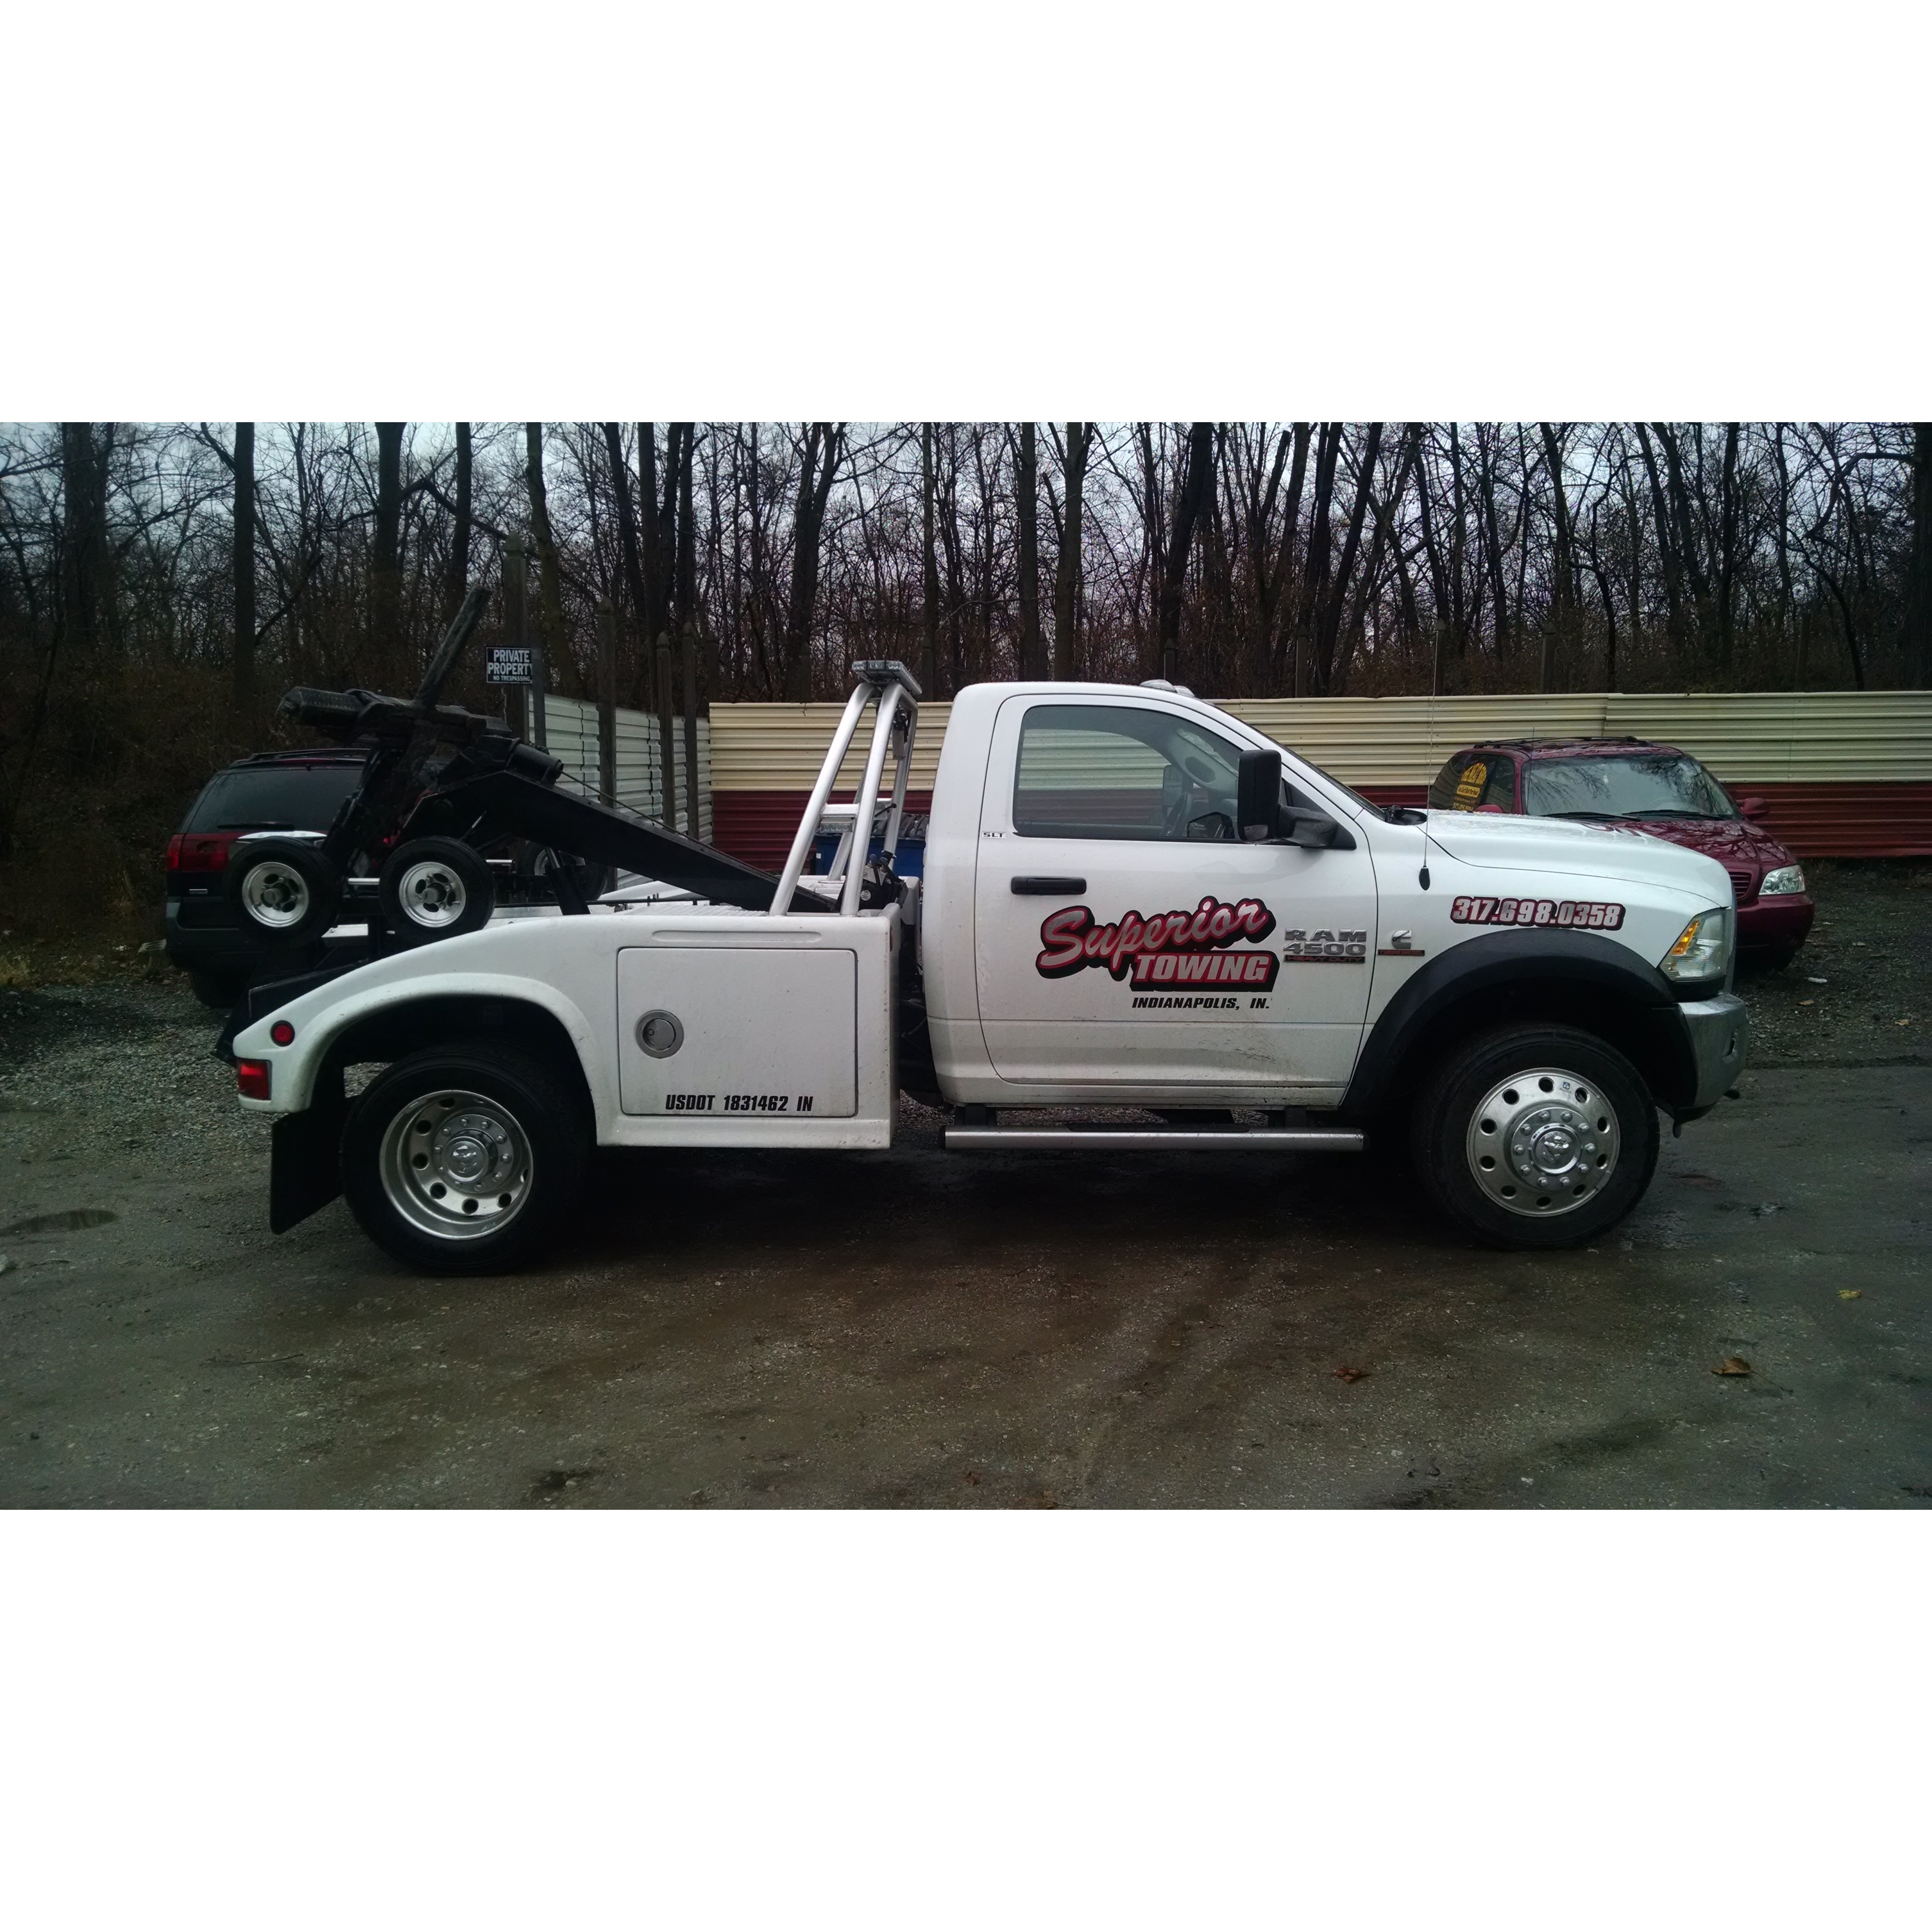 Superior towing inc in indianapolis in 317 698 0358 for Motor city towing detroit